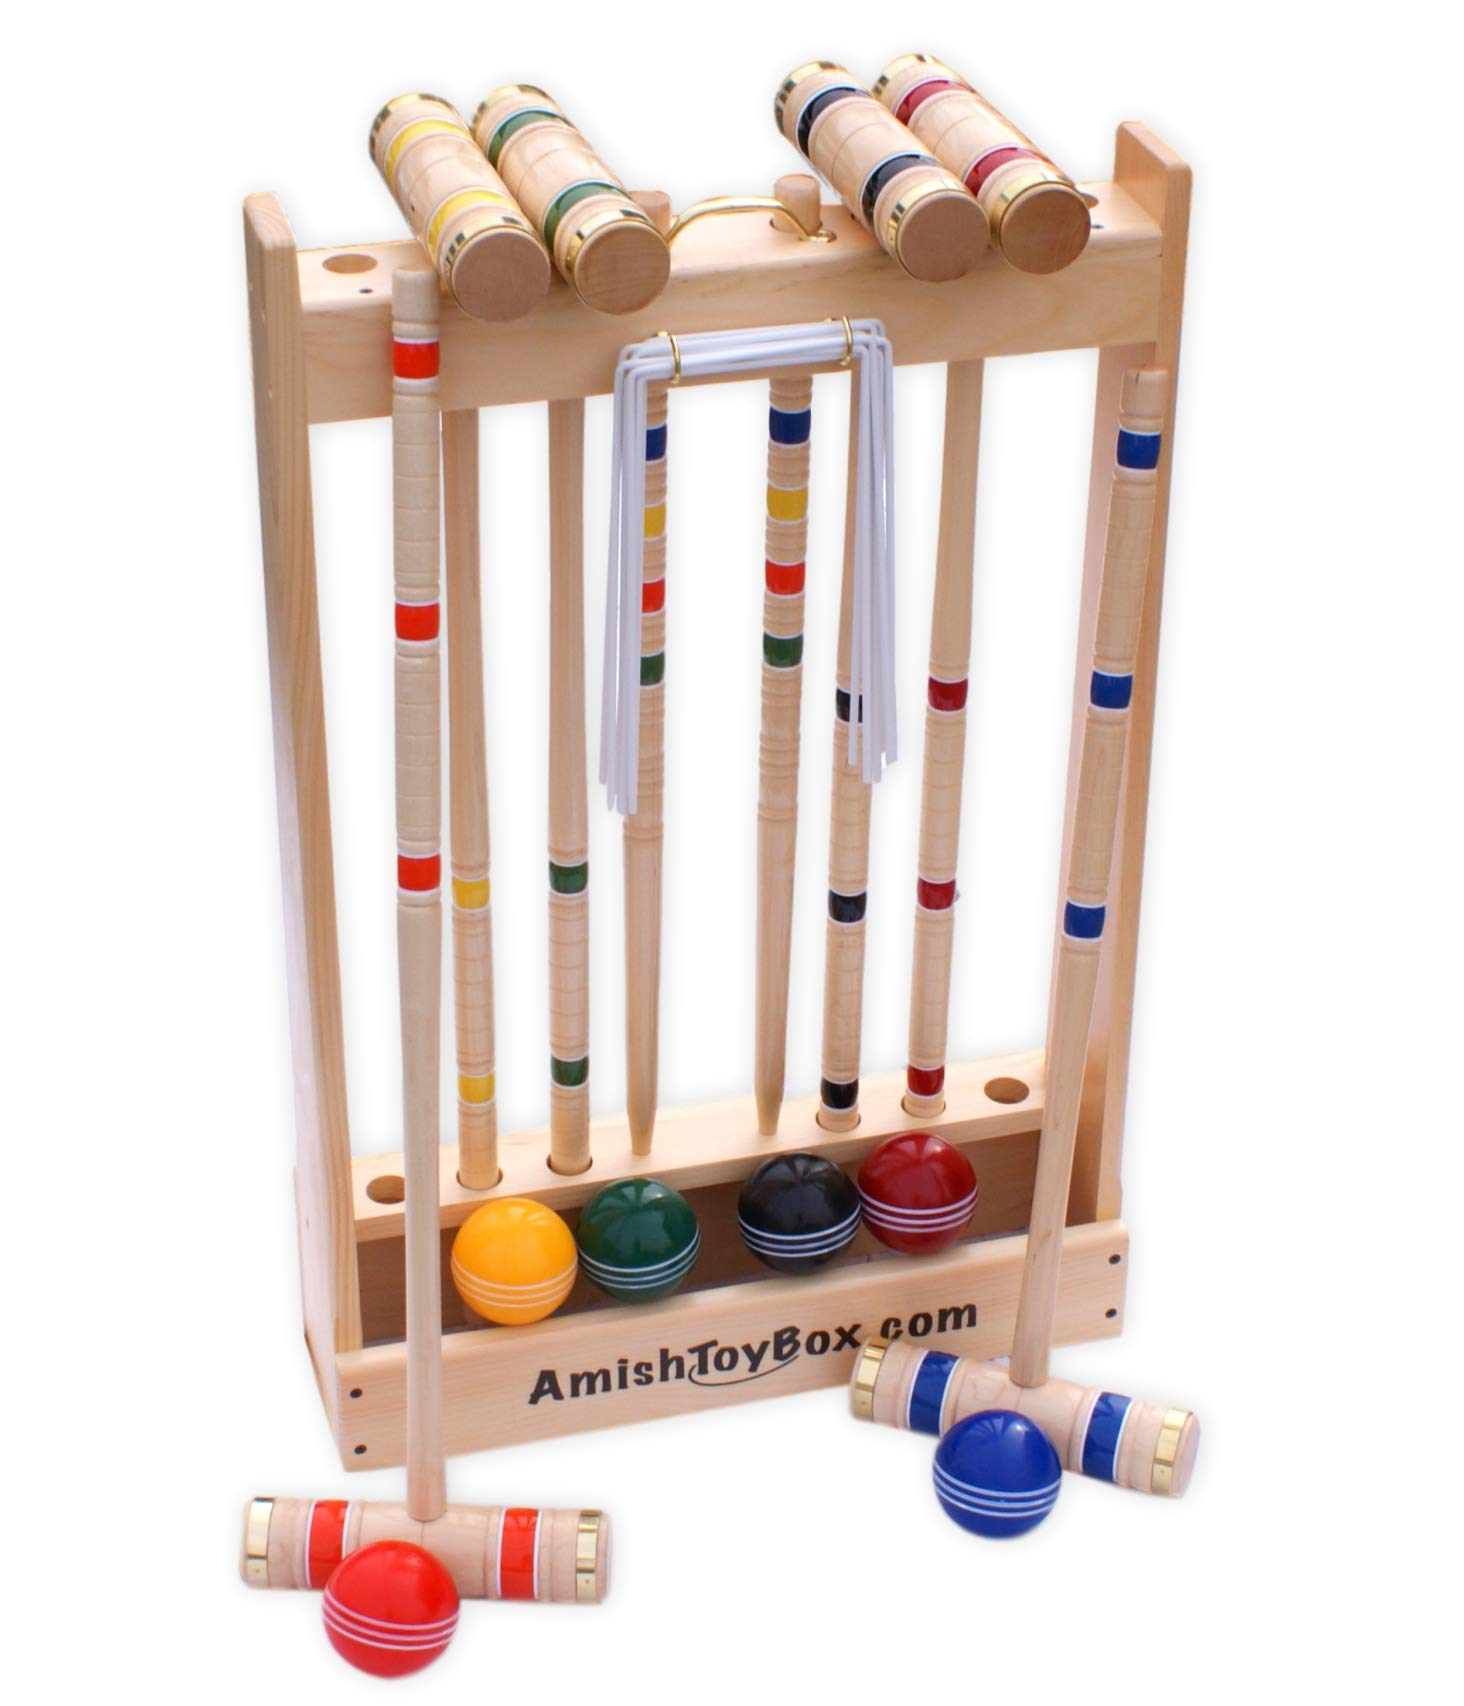 Amish-Crafted Deluxe Maple-Wood Croquet Game Set, 6 Player (Three 28'' Handles/Three 32'' Handles) by AmishToyBox.com